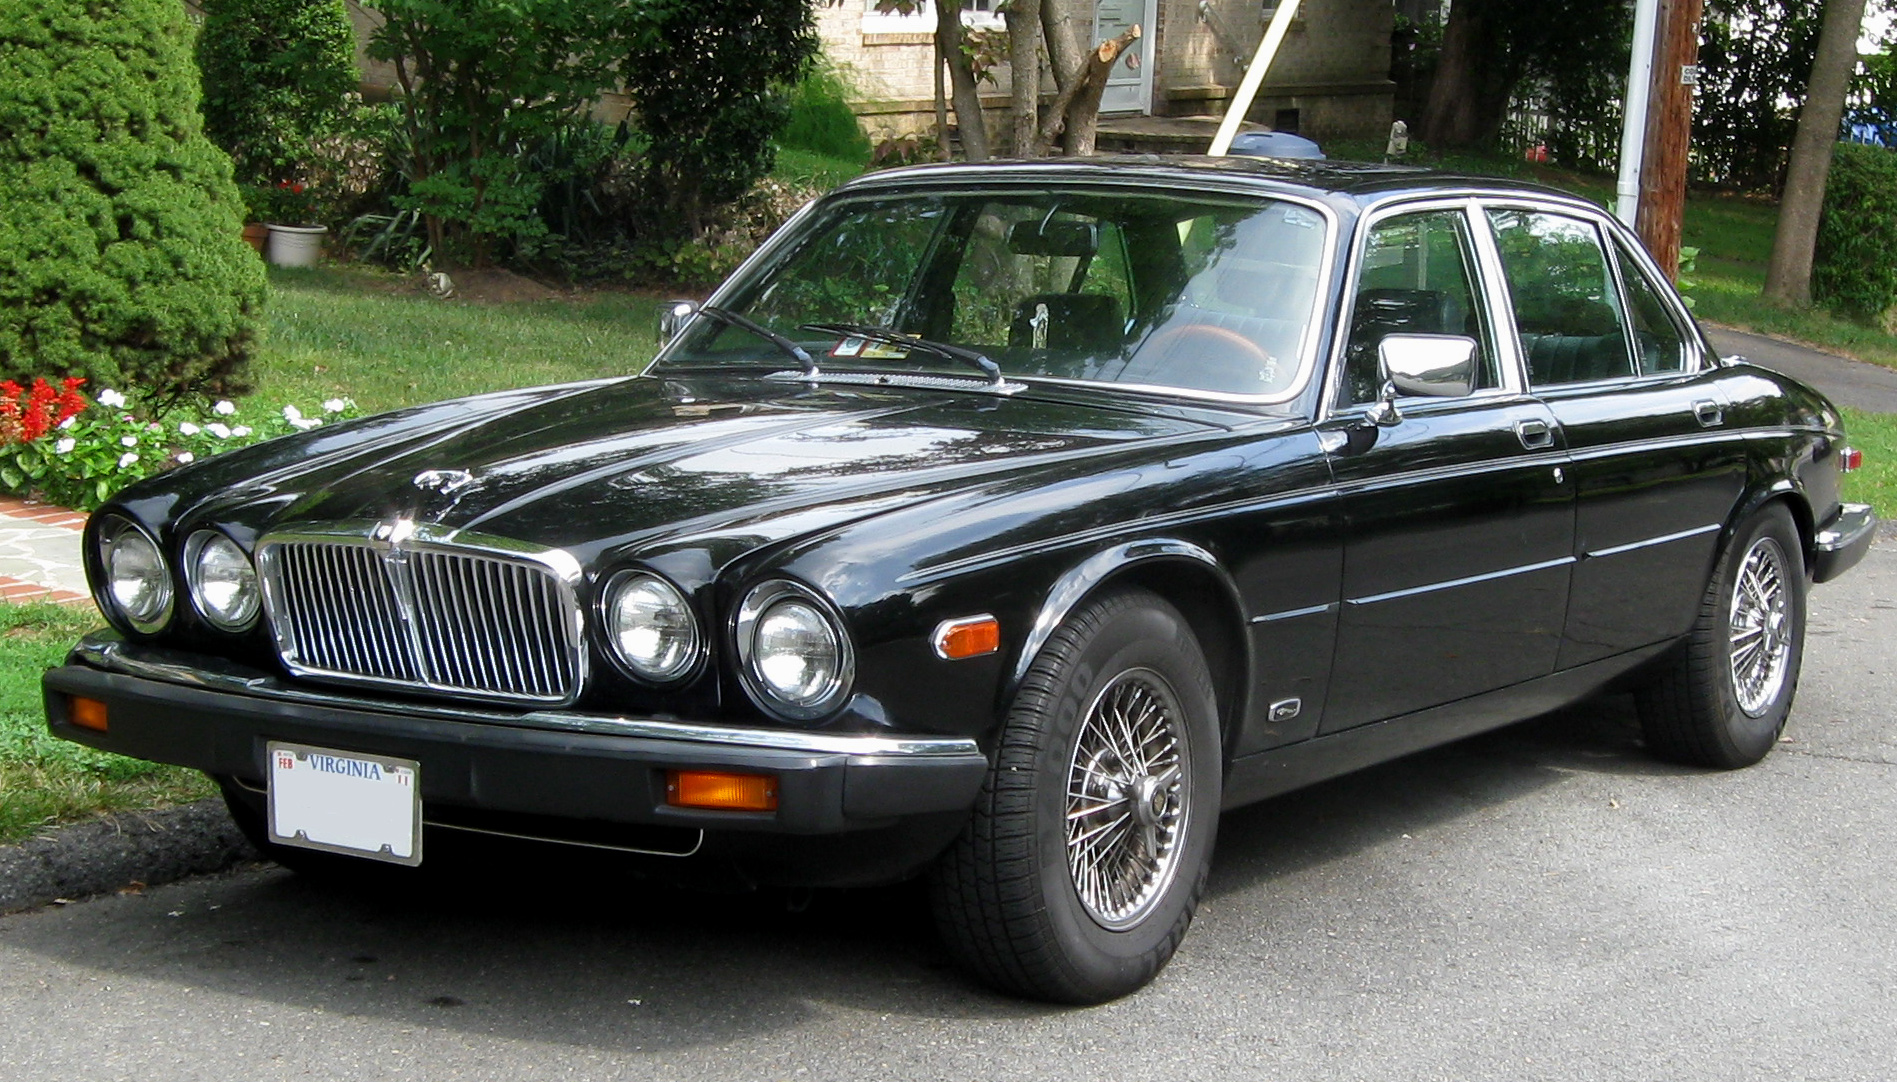 1990 Jaguar Xj-series #3